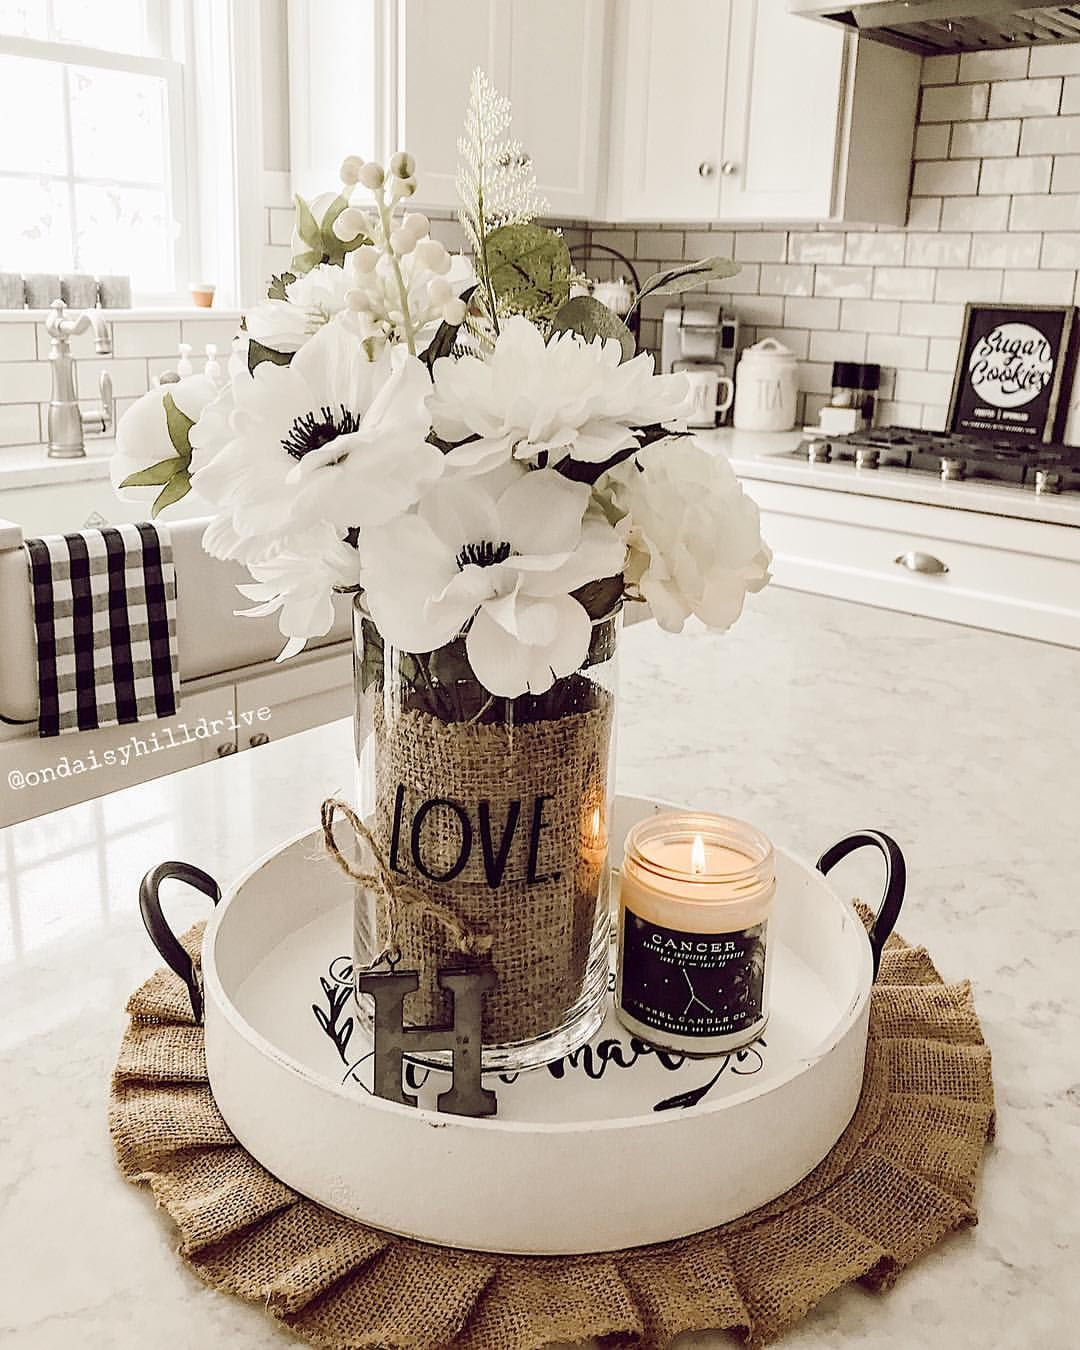 My Favorite Place Is Where We Feel Safe Where Our Hearts Are Full Where Our So Kitchen Table Decor Dining Room Table Centerpieces Kitchen Decor Themes